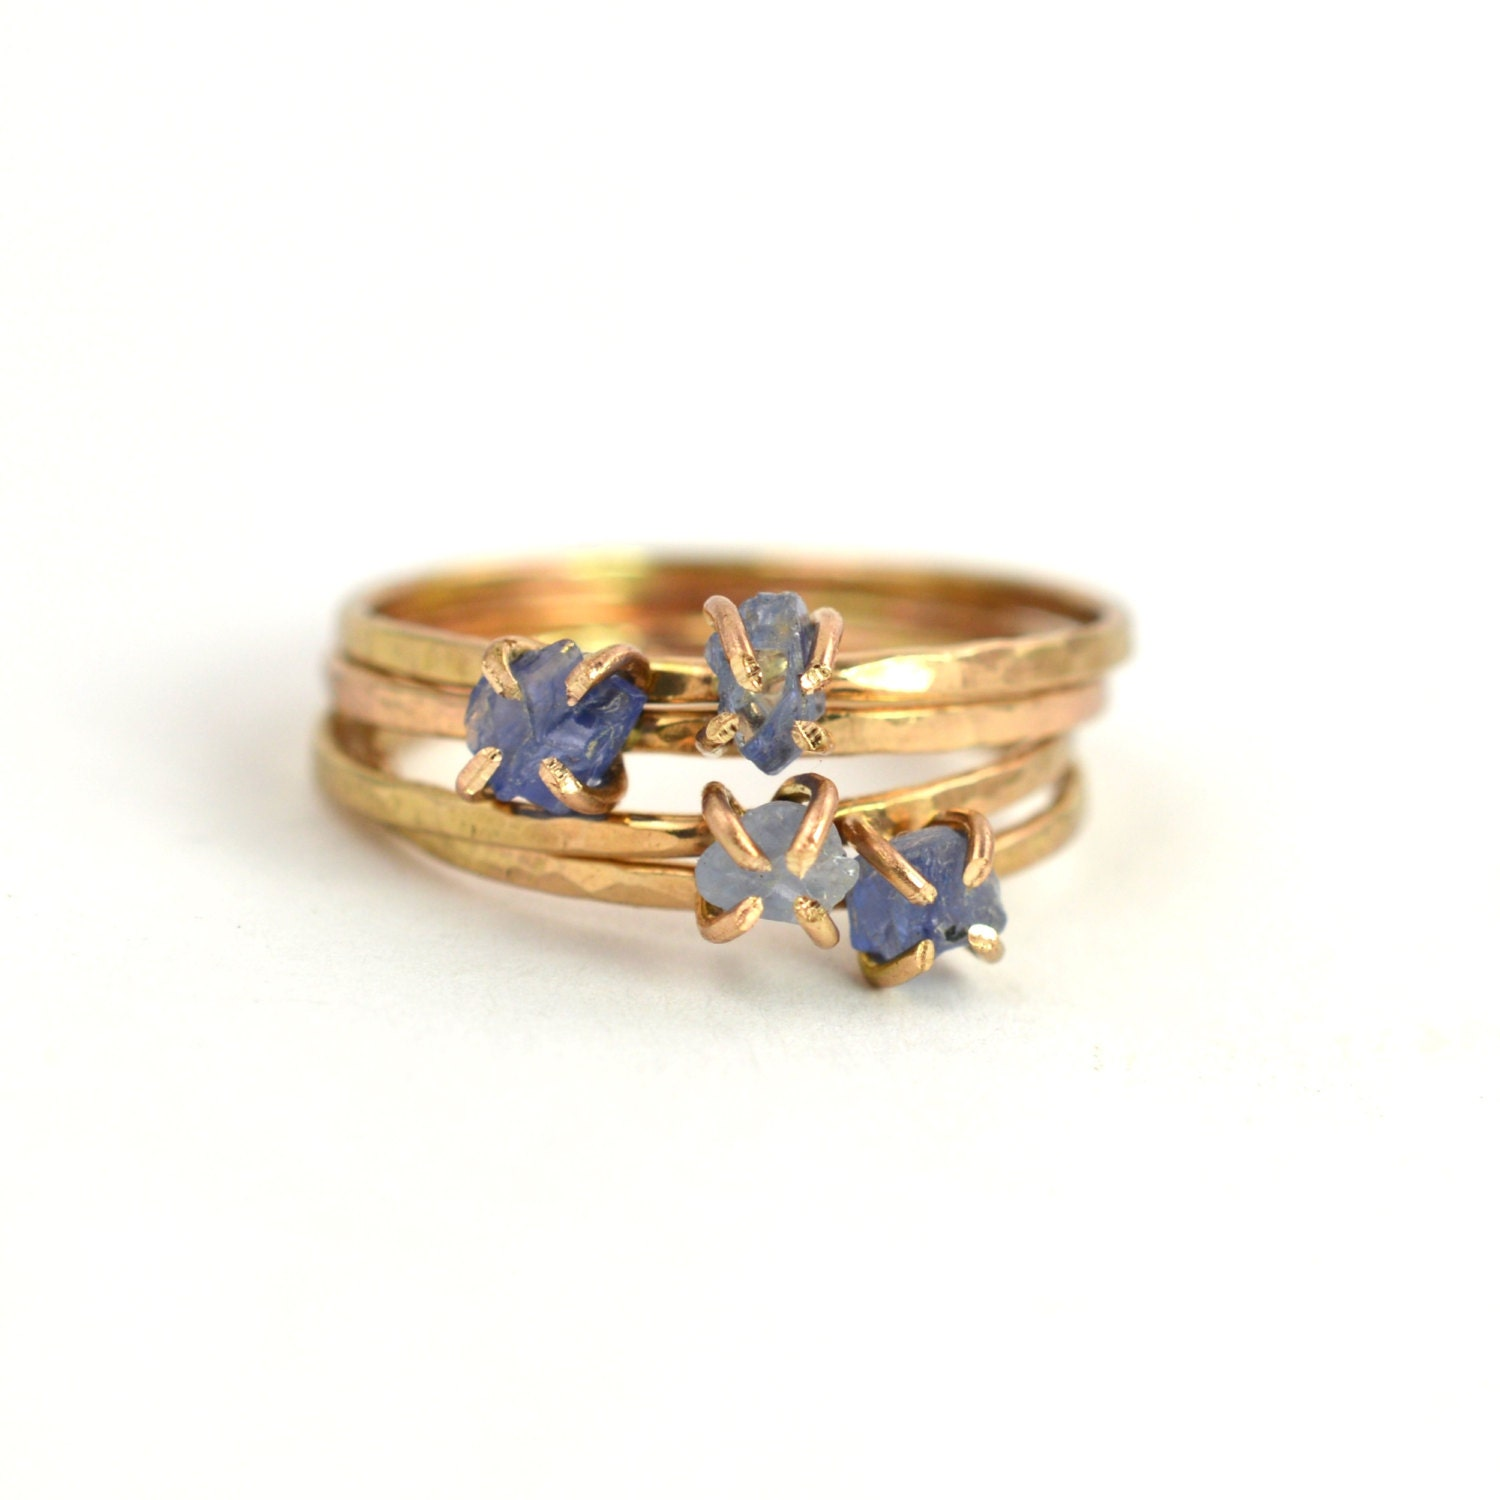 raw sapphire ring rough solitaire gemstone ring september. Black Bedroom Furniture Sets. Home Design Ideas